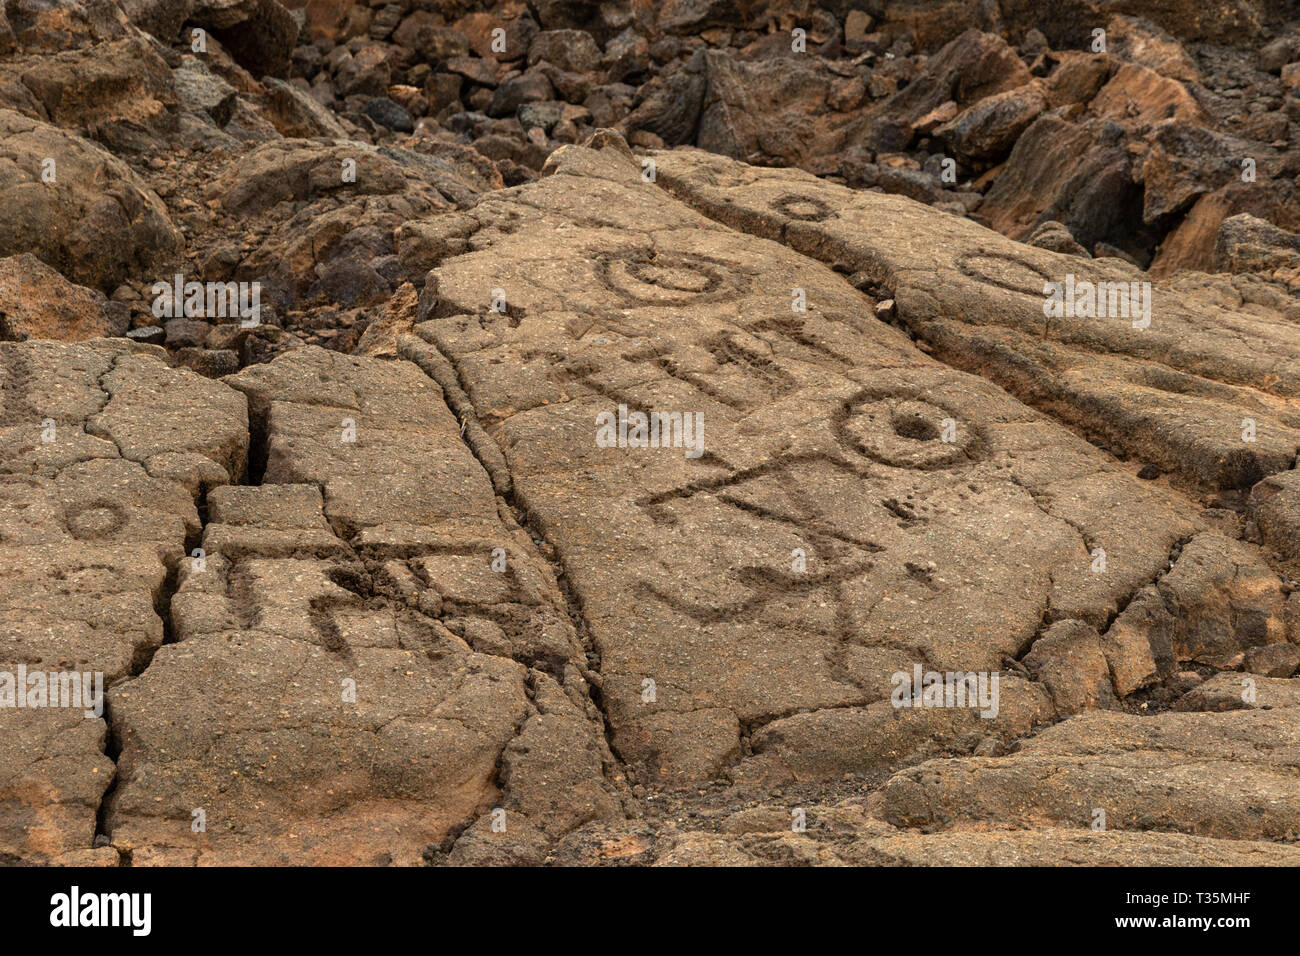 Petroglyphs in Waikoloa Field, on the King's Trail ('Mamalahoa'), near Kona on the Big Island of Hawaii. - Stock Image